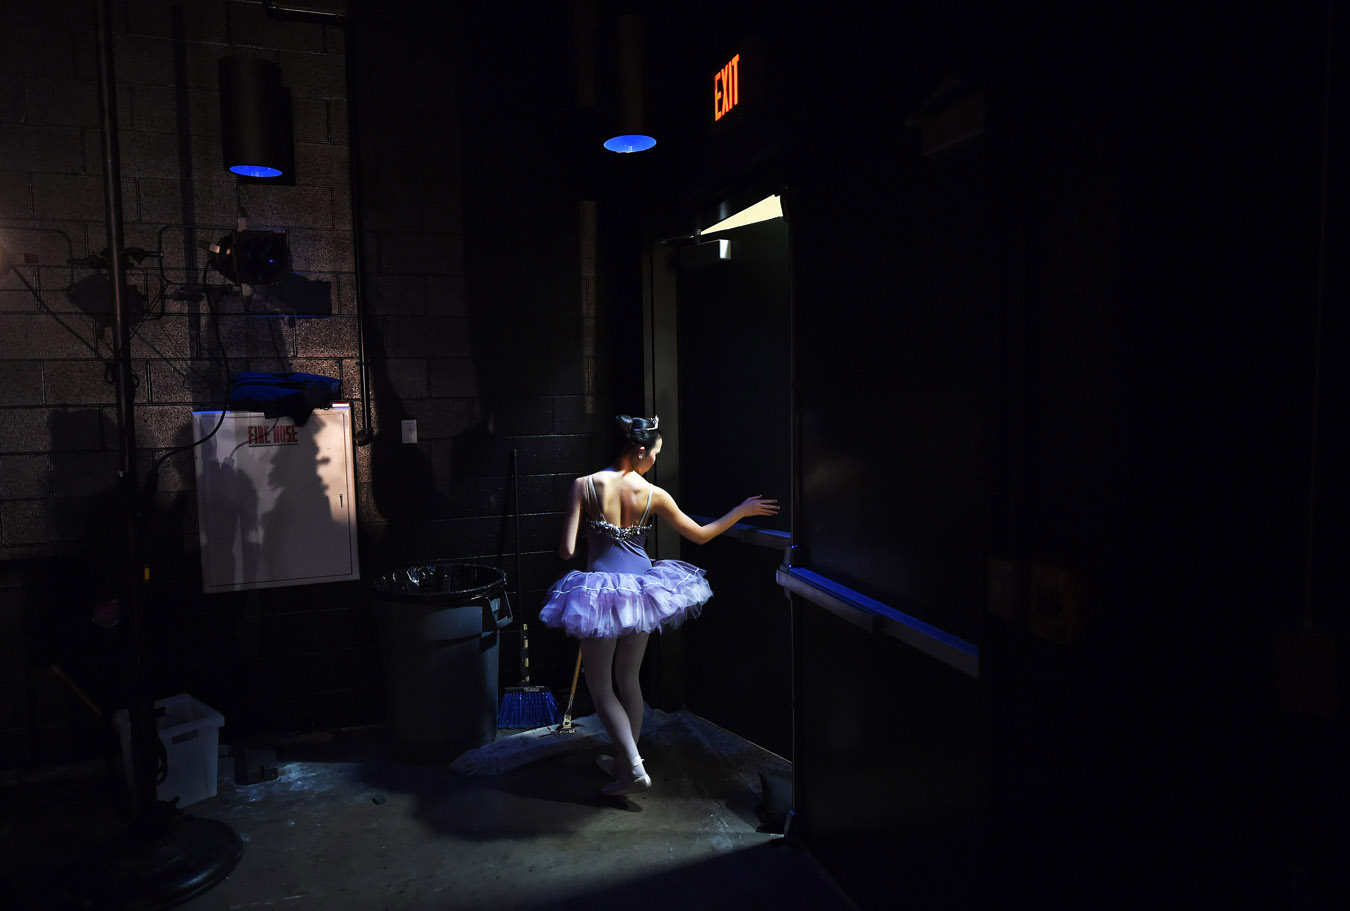 Dayna Richards, 15, heads backstage to wait for her cue during a performance of {quote}The Nutcracker{quote} by the Fredericksburg Ballet Centre at James Monroe High School on Sunday December 21, 2014 in Fredericksburg, VA. This was the final performance of {quote}The Nutcracker{quote} by the Fredericksburg Ballet Centre for the holiday season. (Photo by Matt McClain/ The Washington Post)